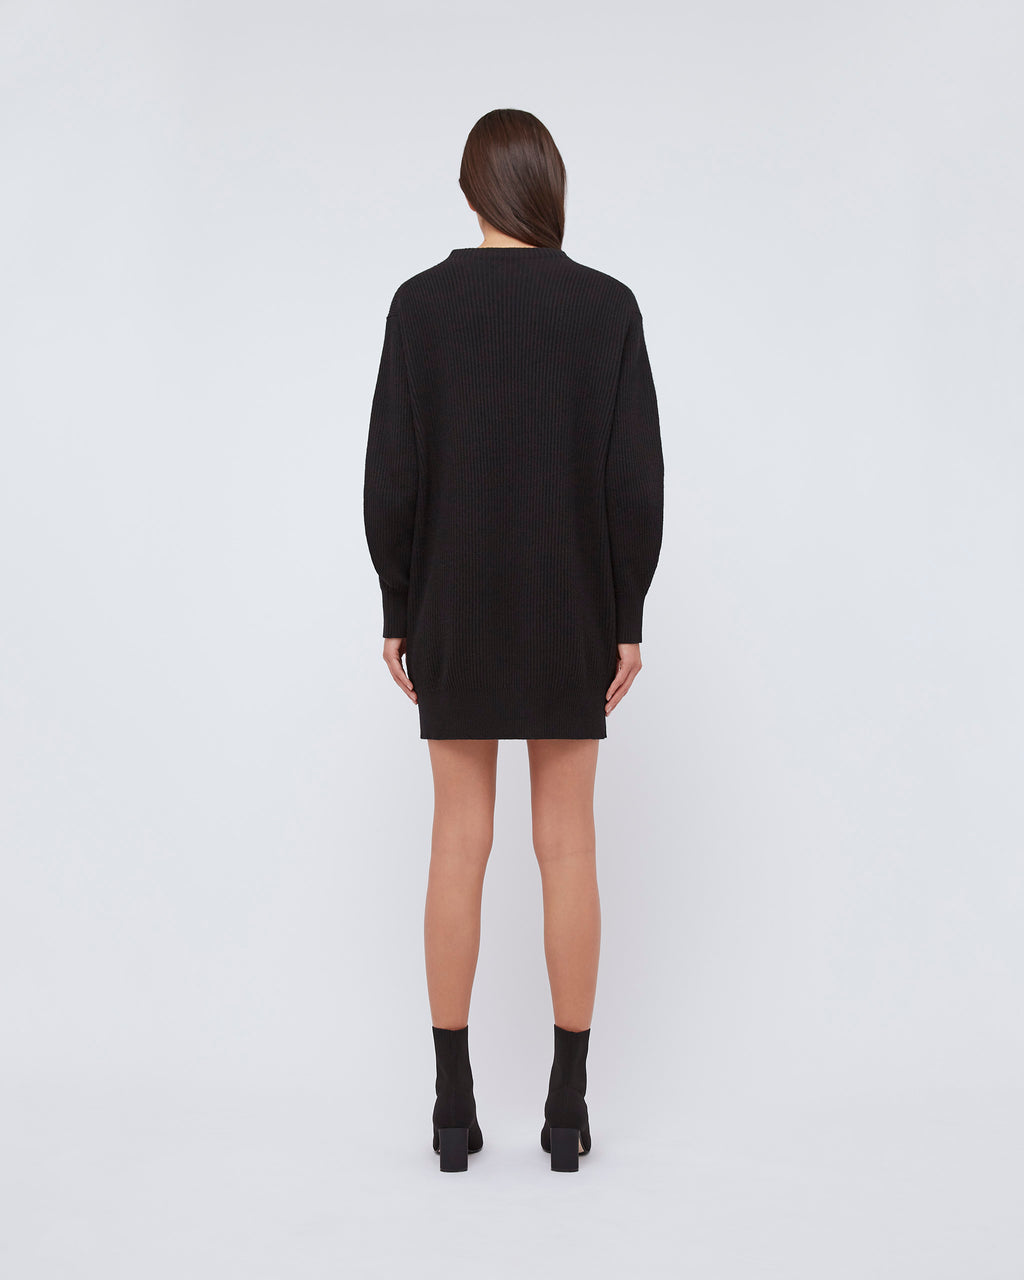 The Freja Dress In Black